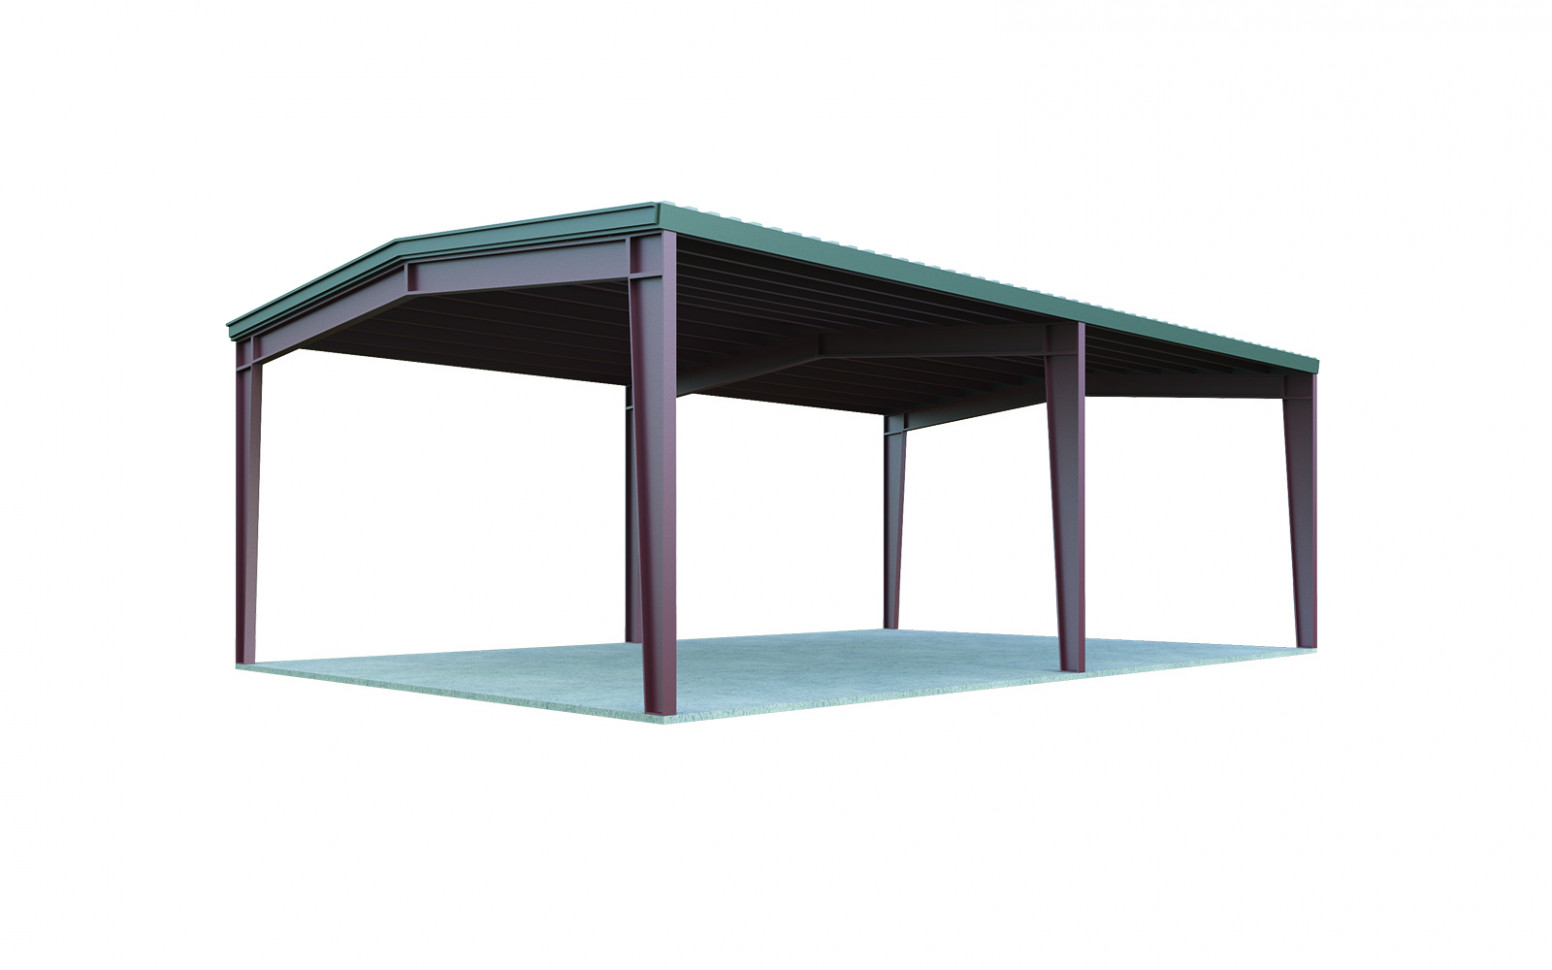 12x12 Metal Carport: Perfect For 12 Cars | General Steel Shop Wooden Carport Prices